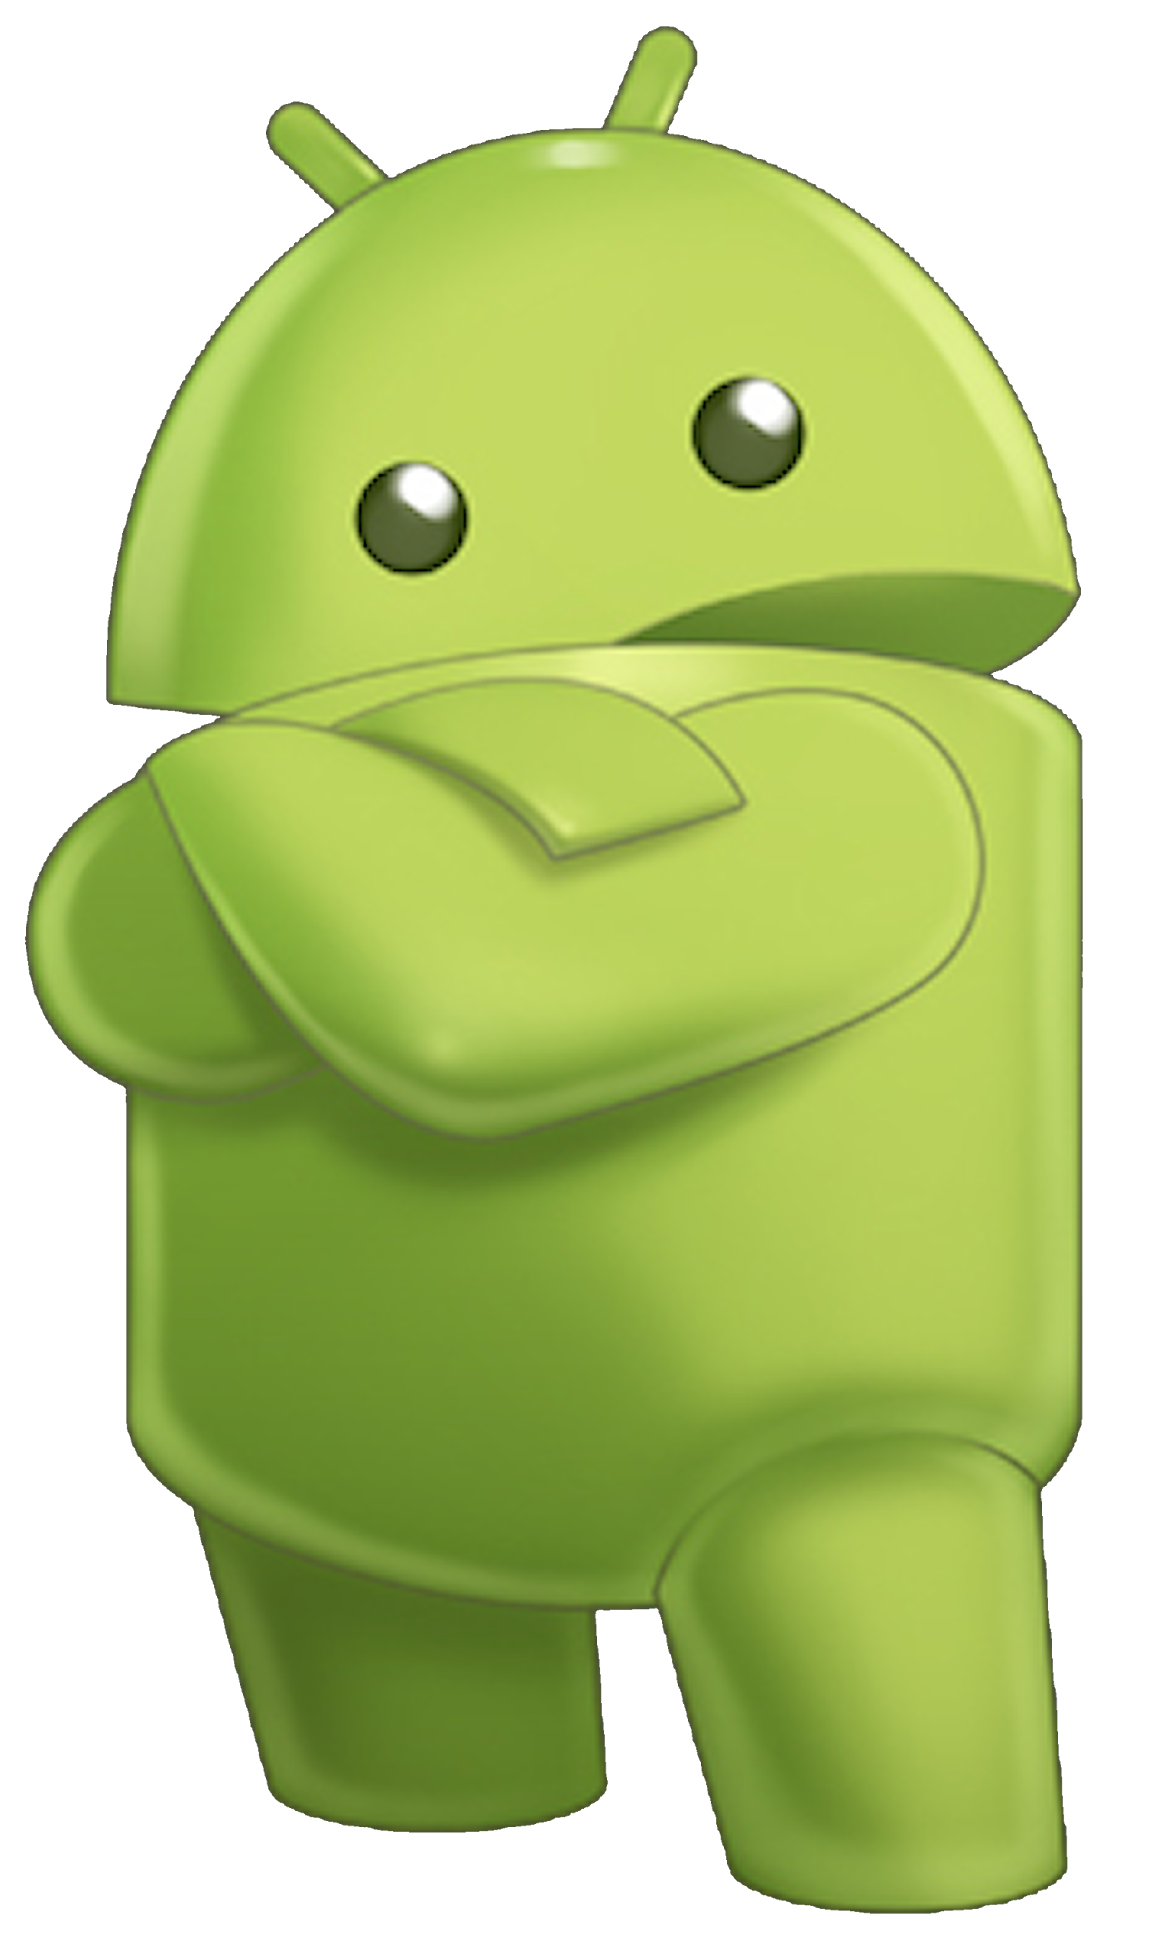 Android icon png. Displaying images for music